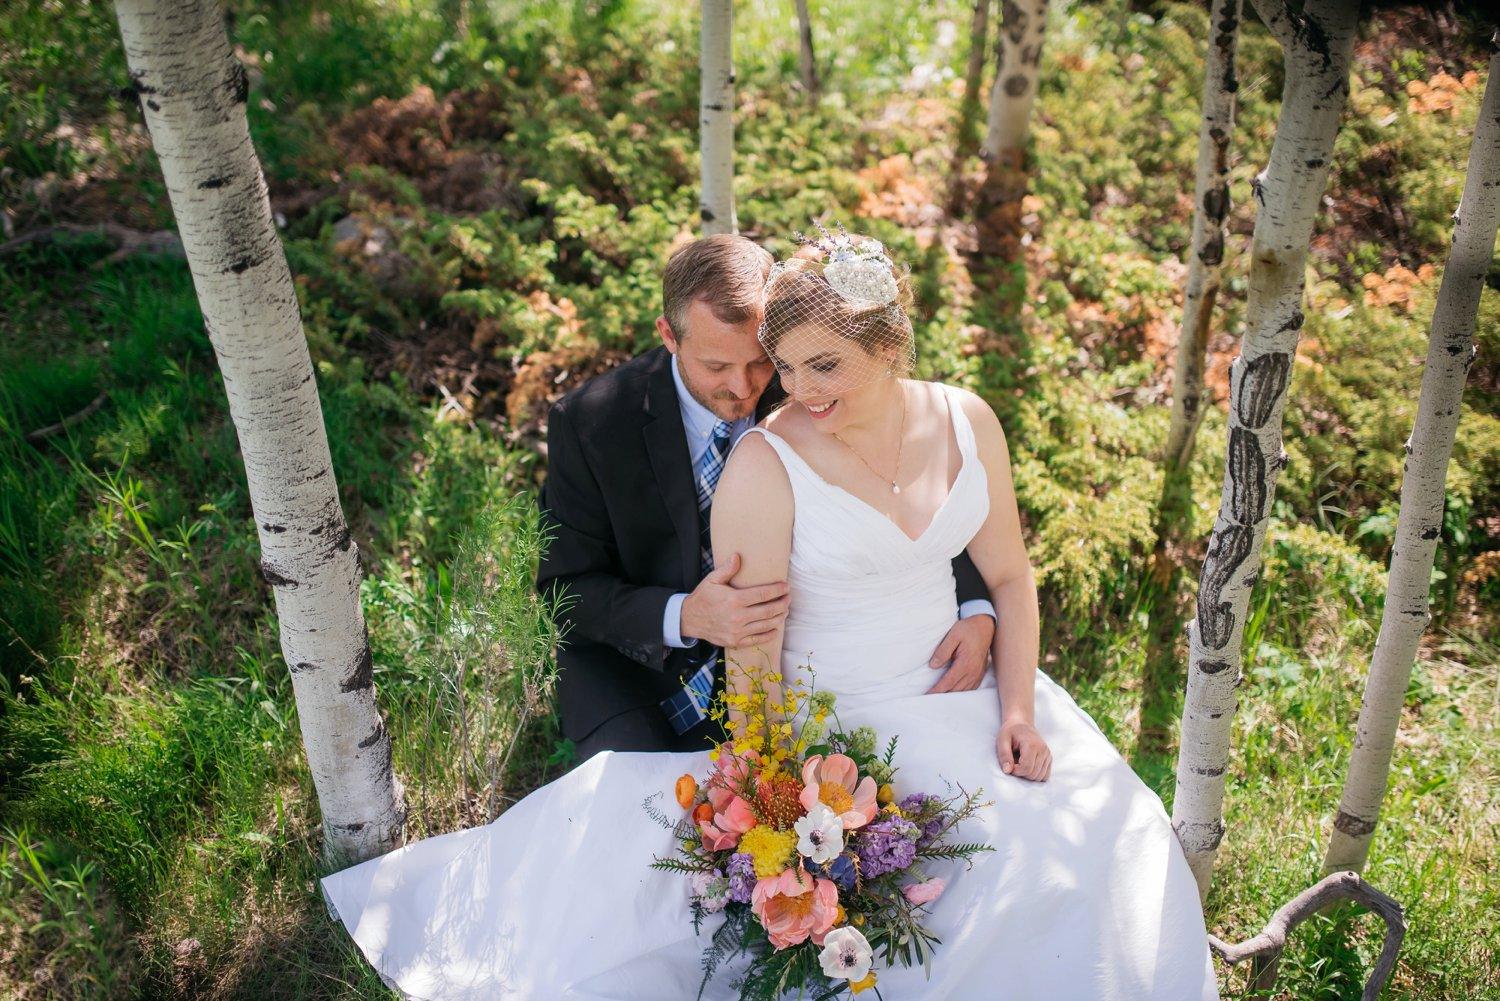 So cute! The bride and groom sitting down among the aspen trees in a mountain meadow! I really want a Colorado mountain wedding! Photo by Maddie Mae Photography